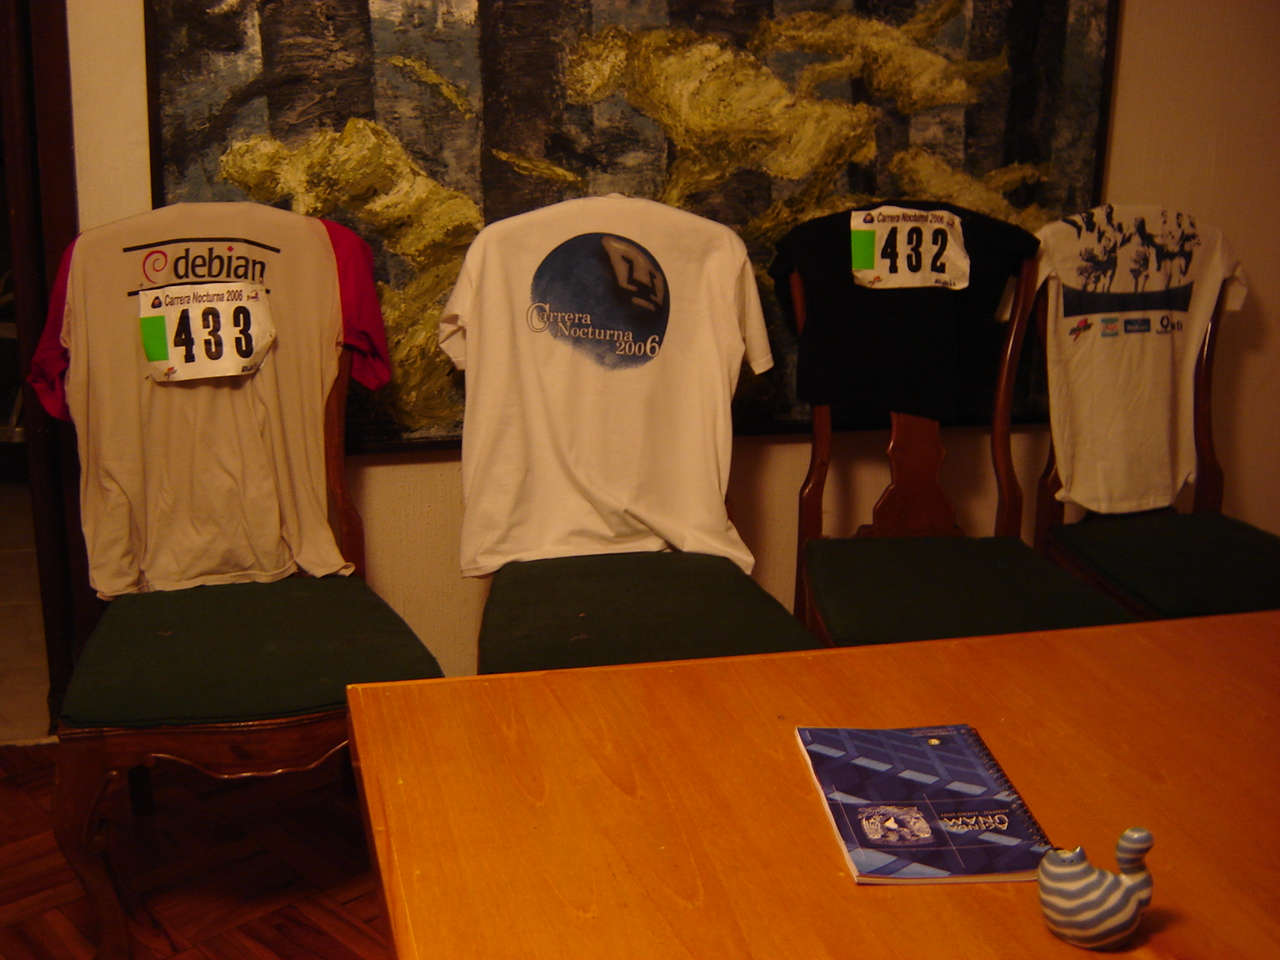 After the 2006 UNAM nocturnal race